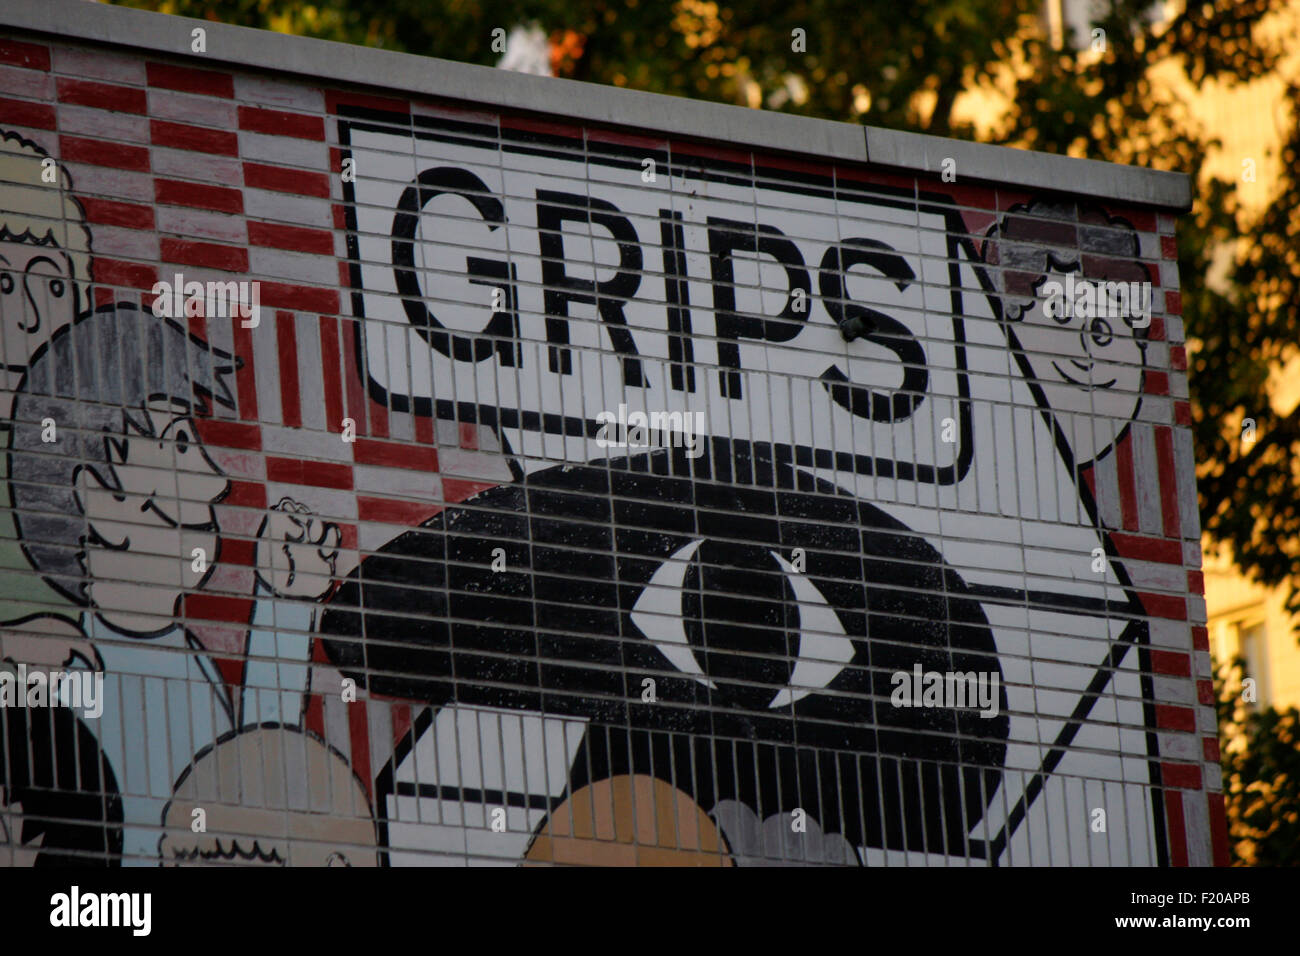 Markenname: 'Grips Theater', Berlin. - Stock Image